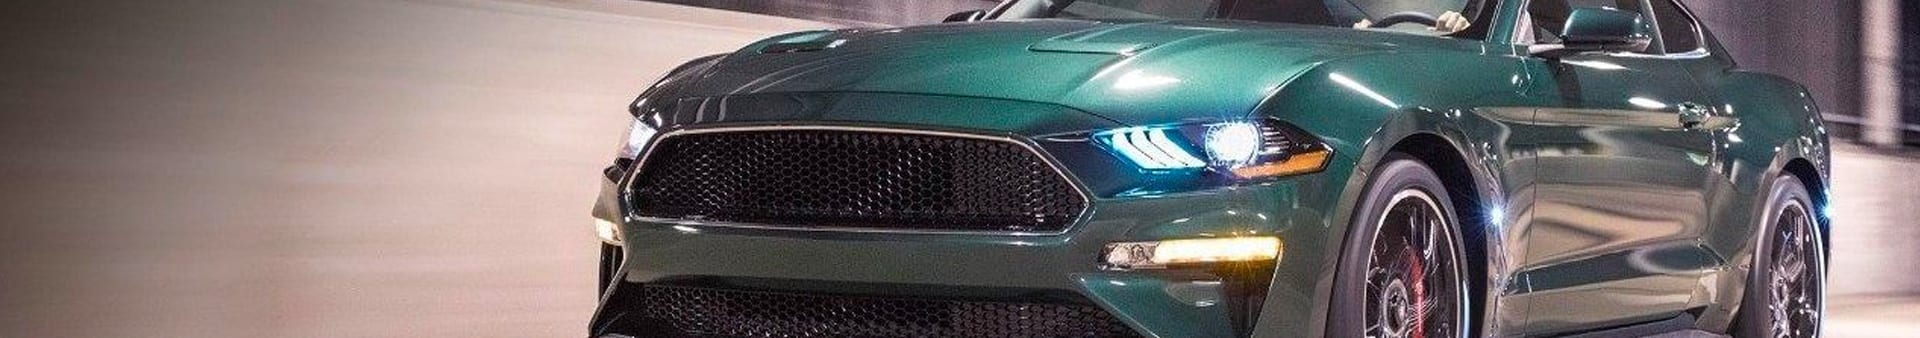 2019 Mustang Bullitt at Team Ford Banner